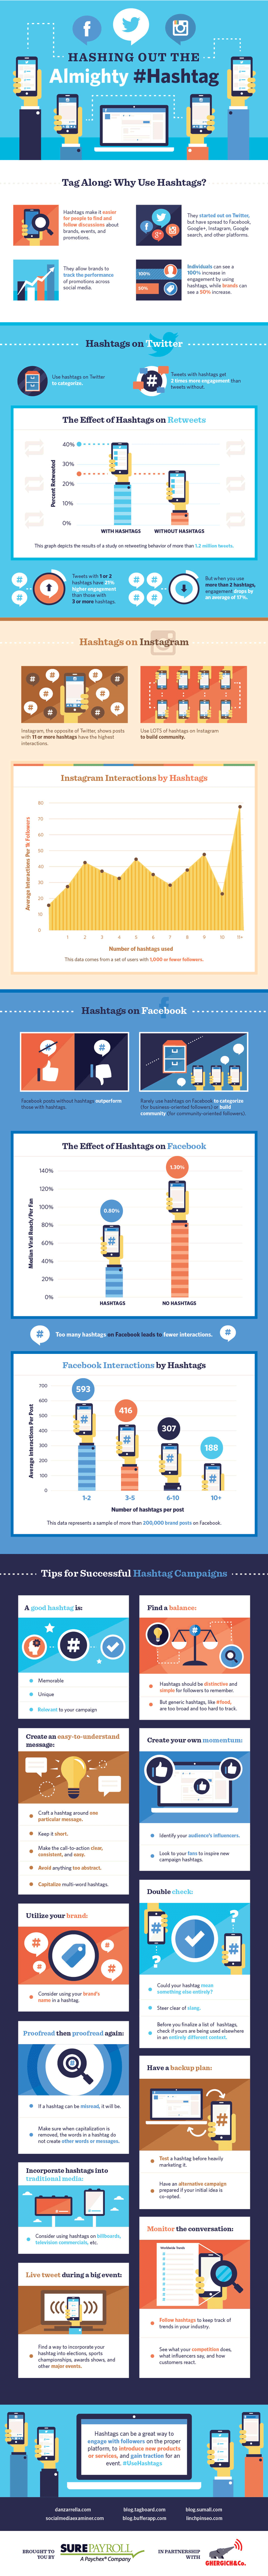 How to use hashtags infographic